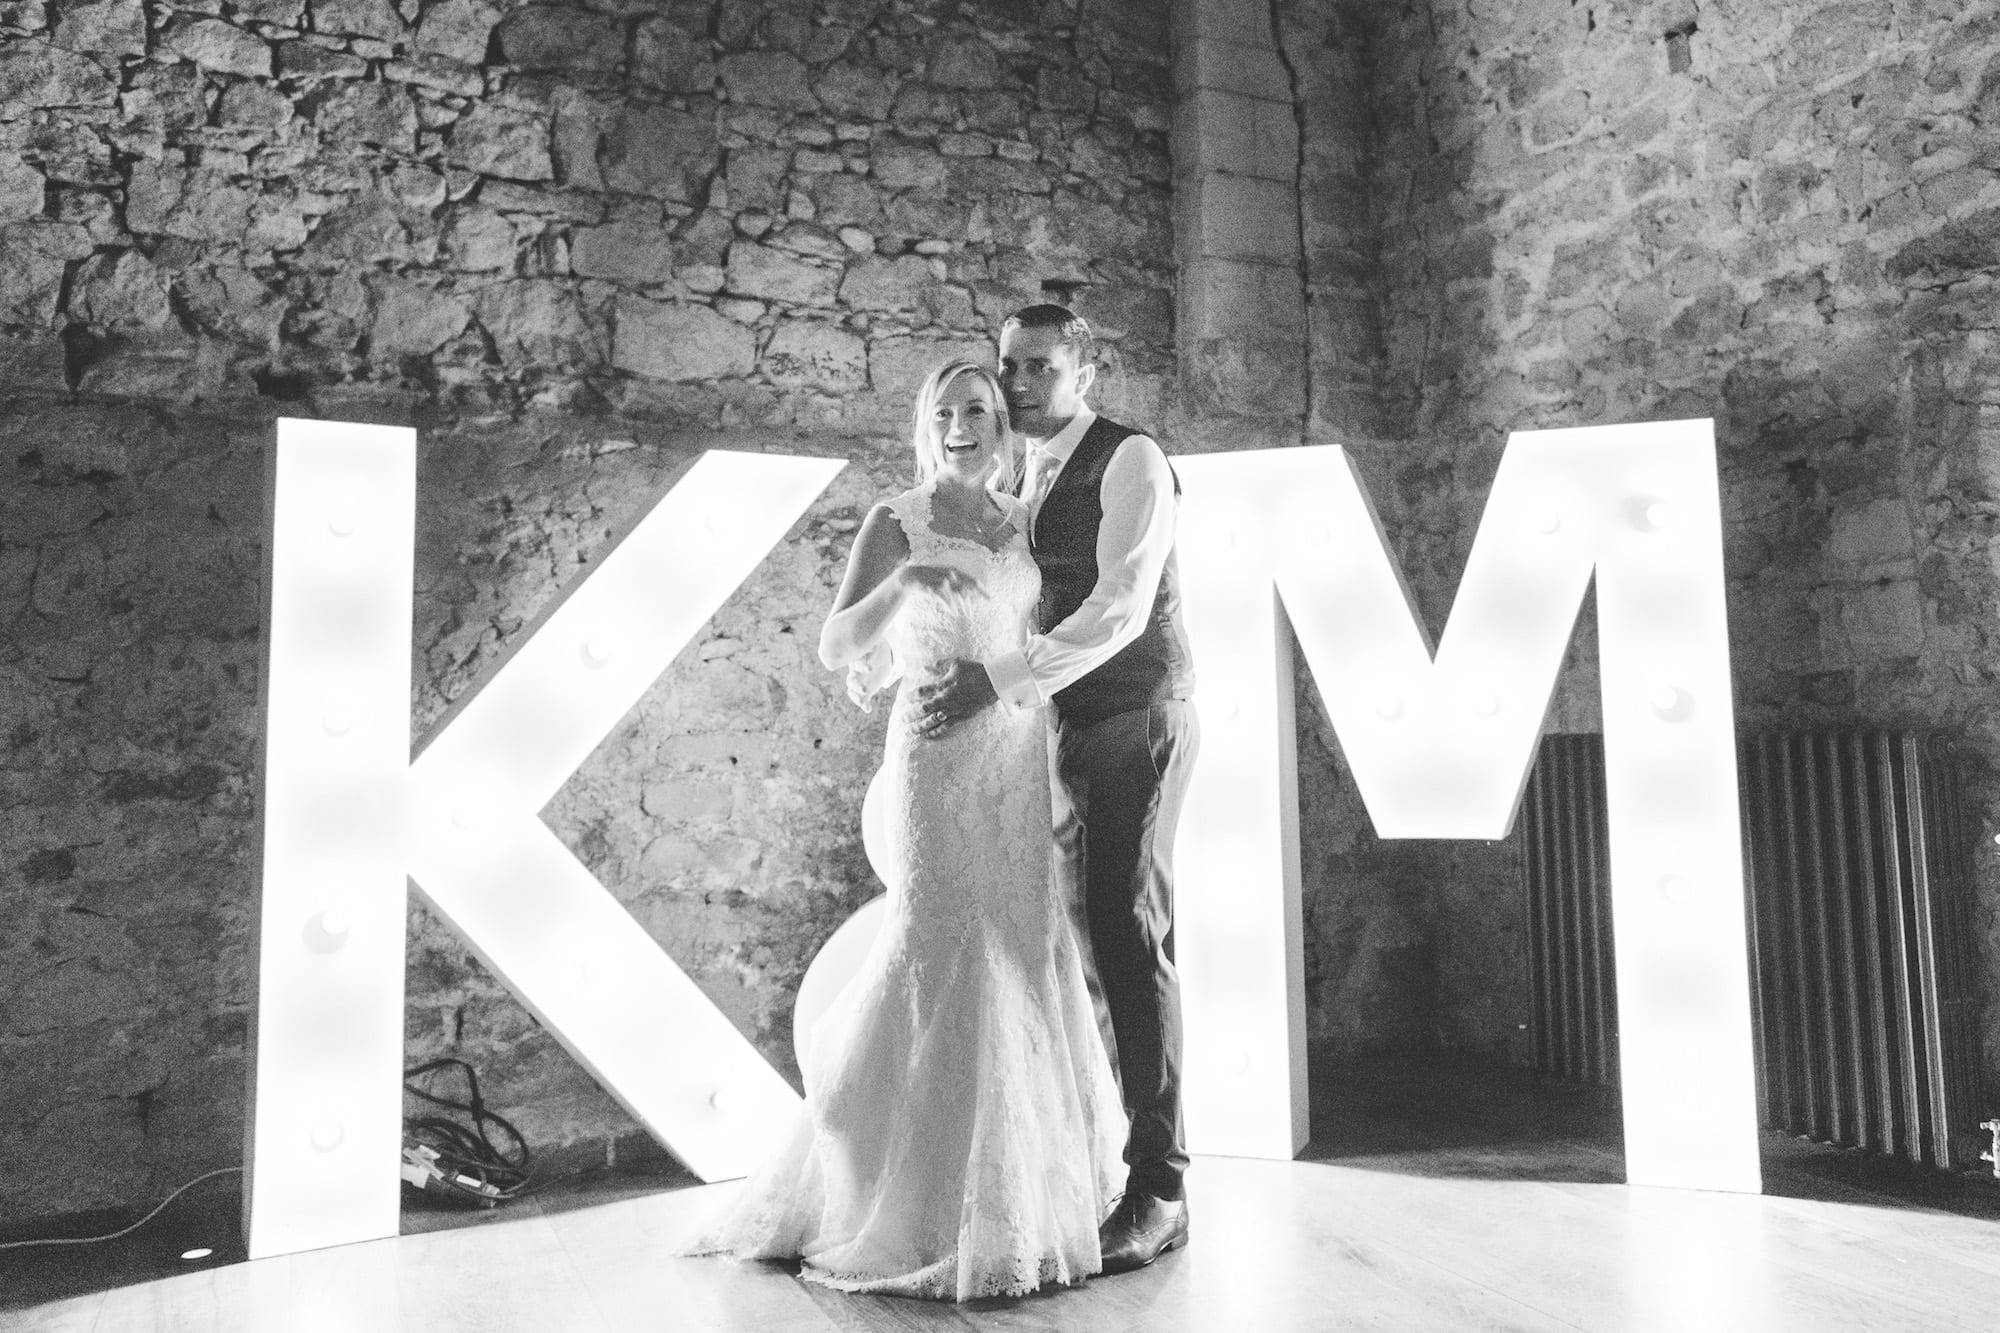 Light up letters Bride and Groom initials